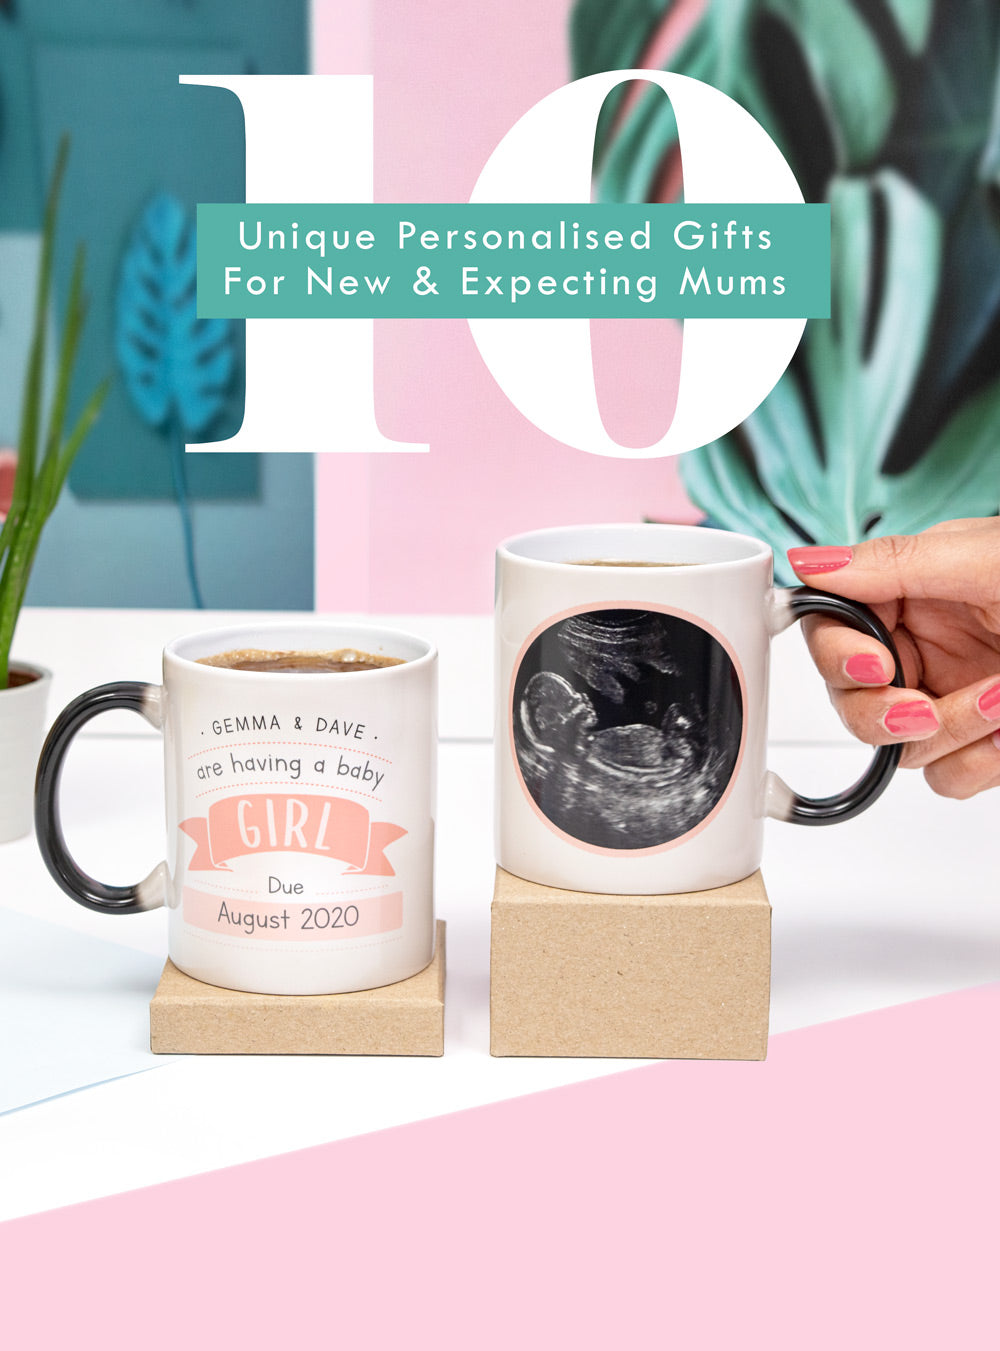 10 Unique Personalised gift ideas for new and expecting mums